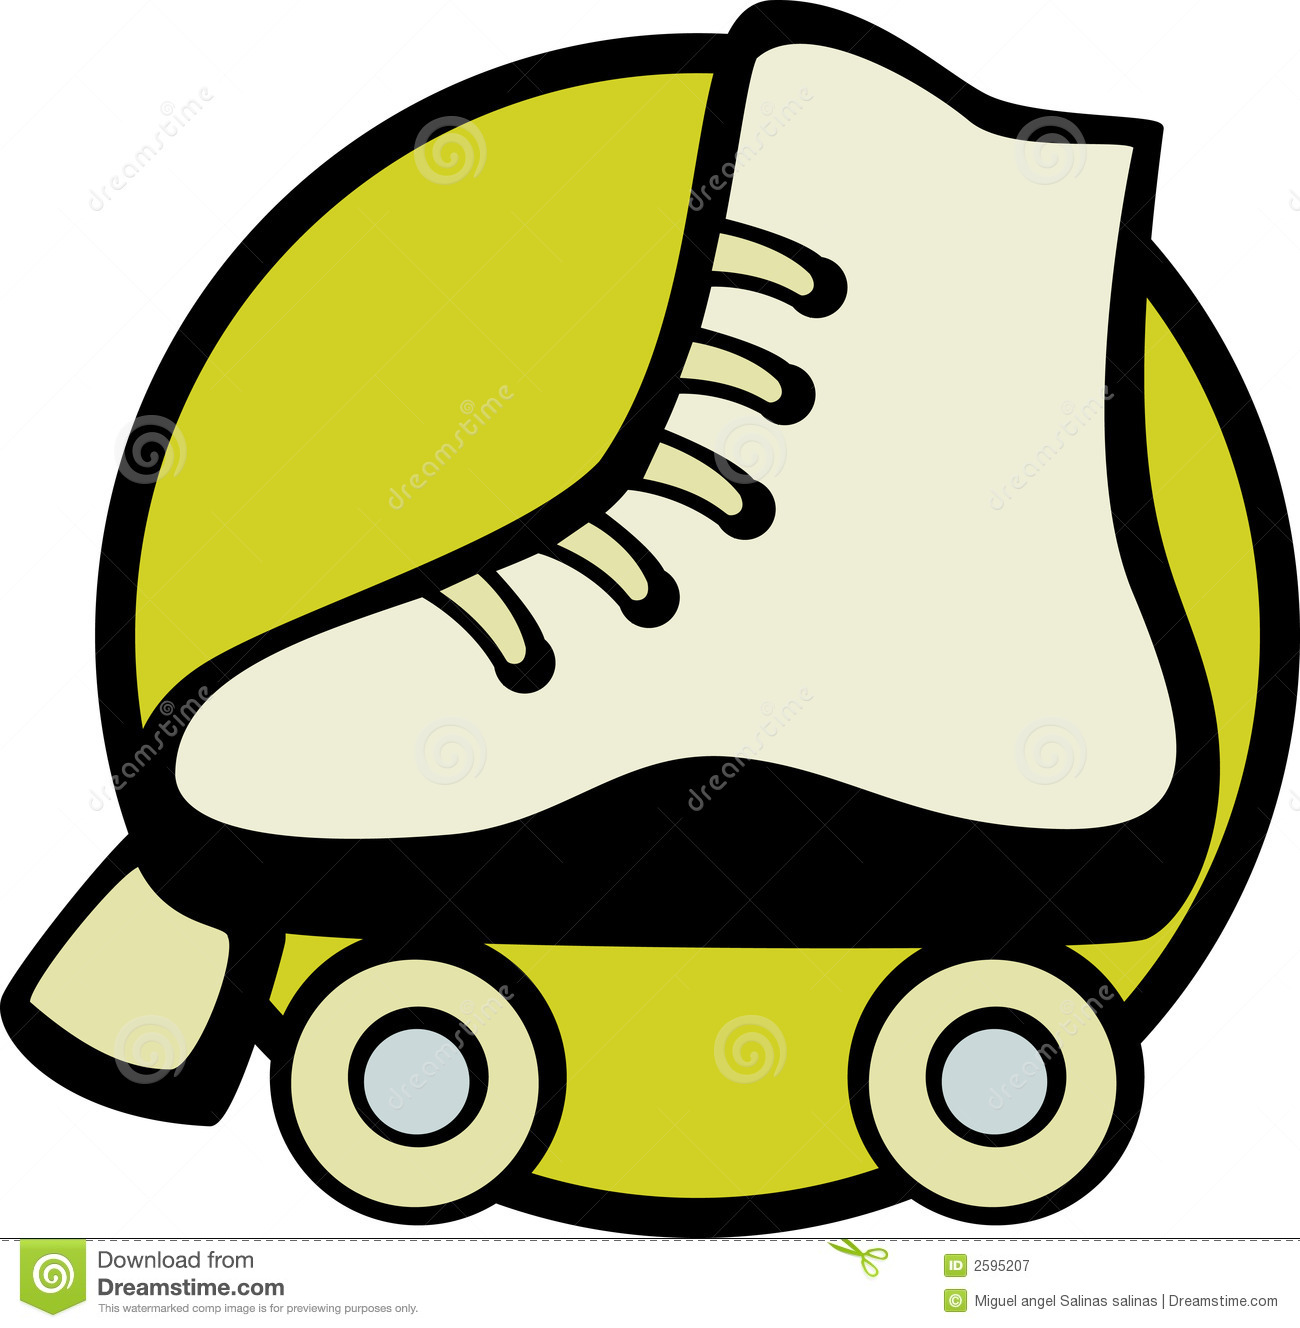 Roller skate vector illustration Royalty Free Stock Photography